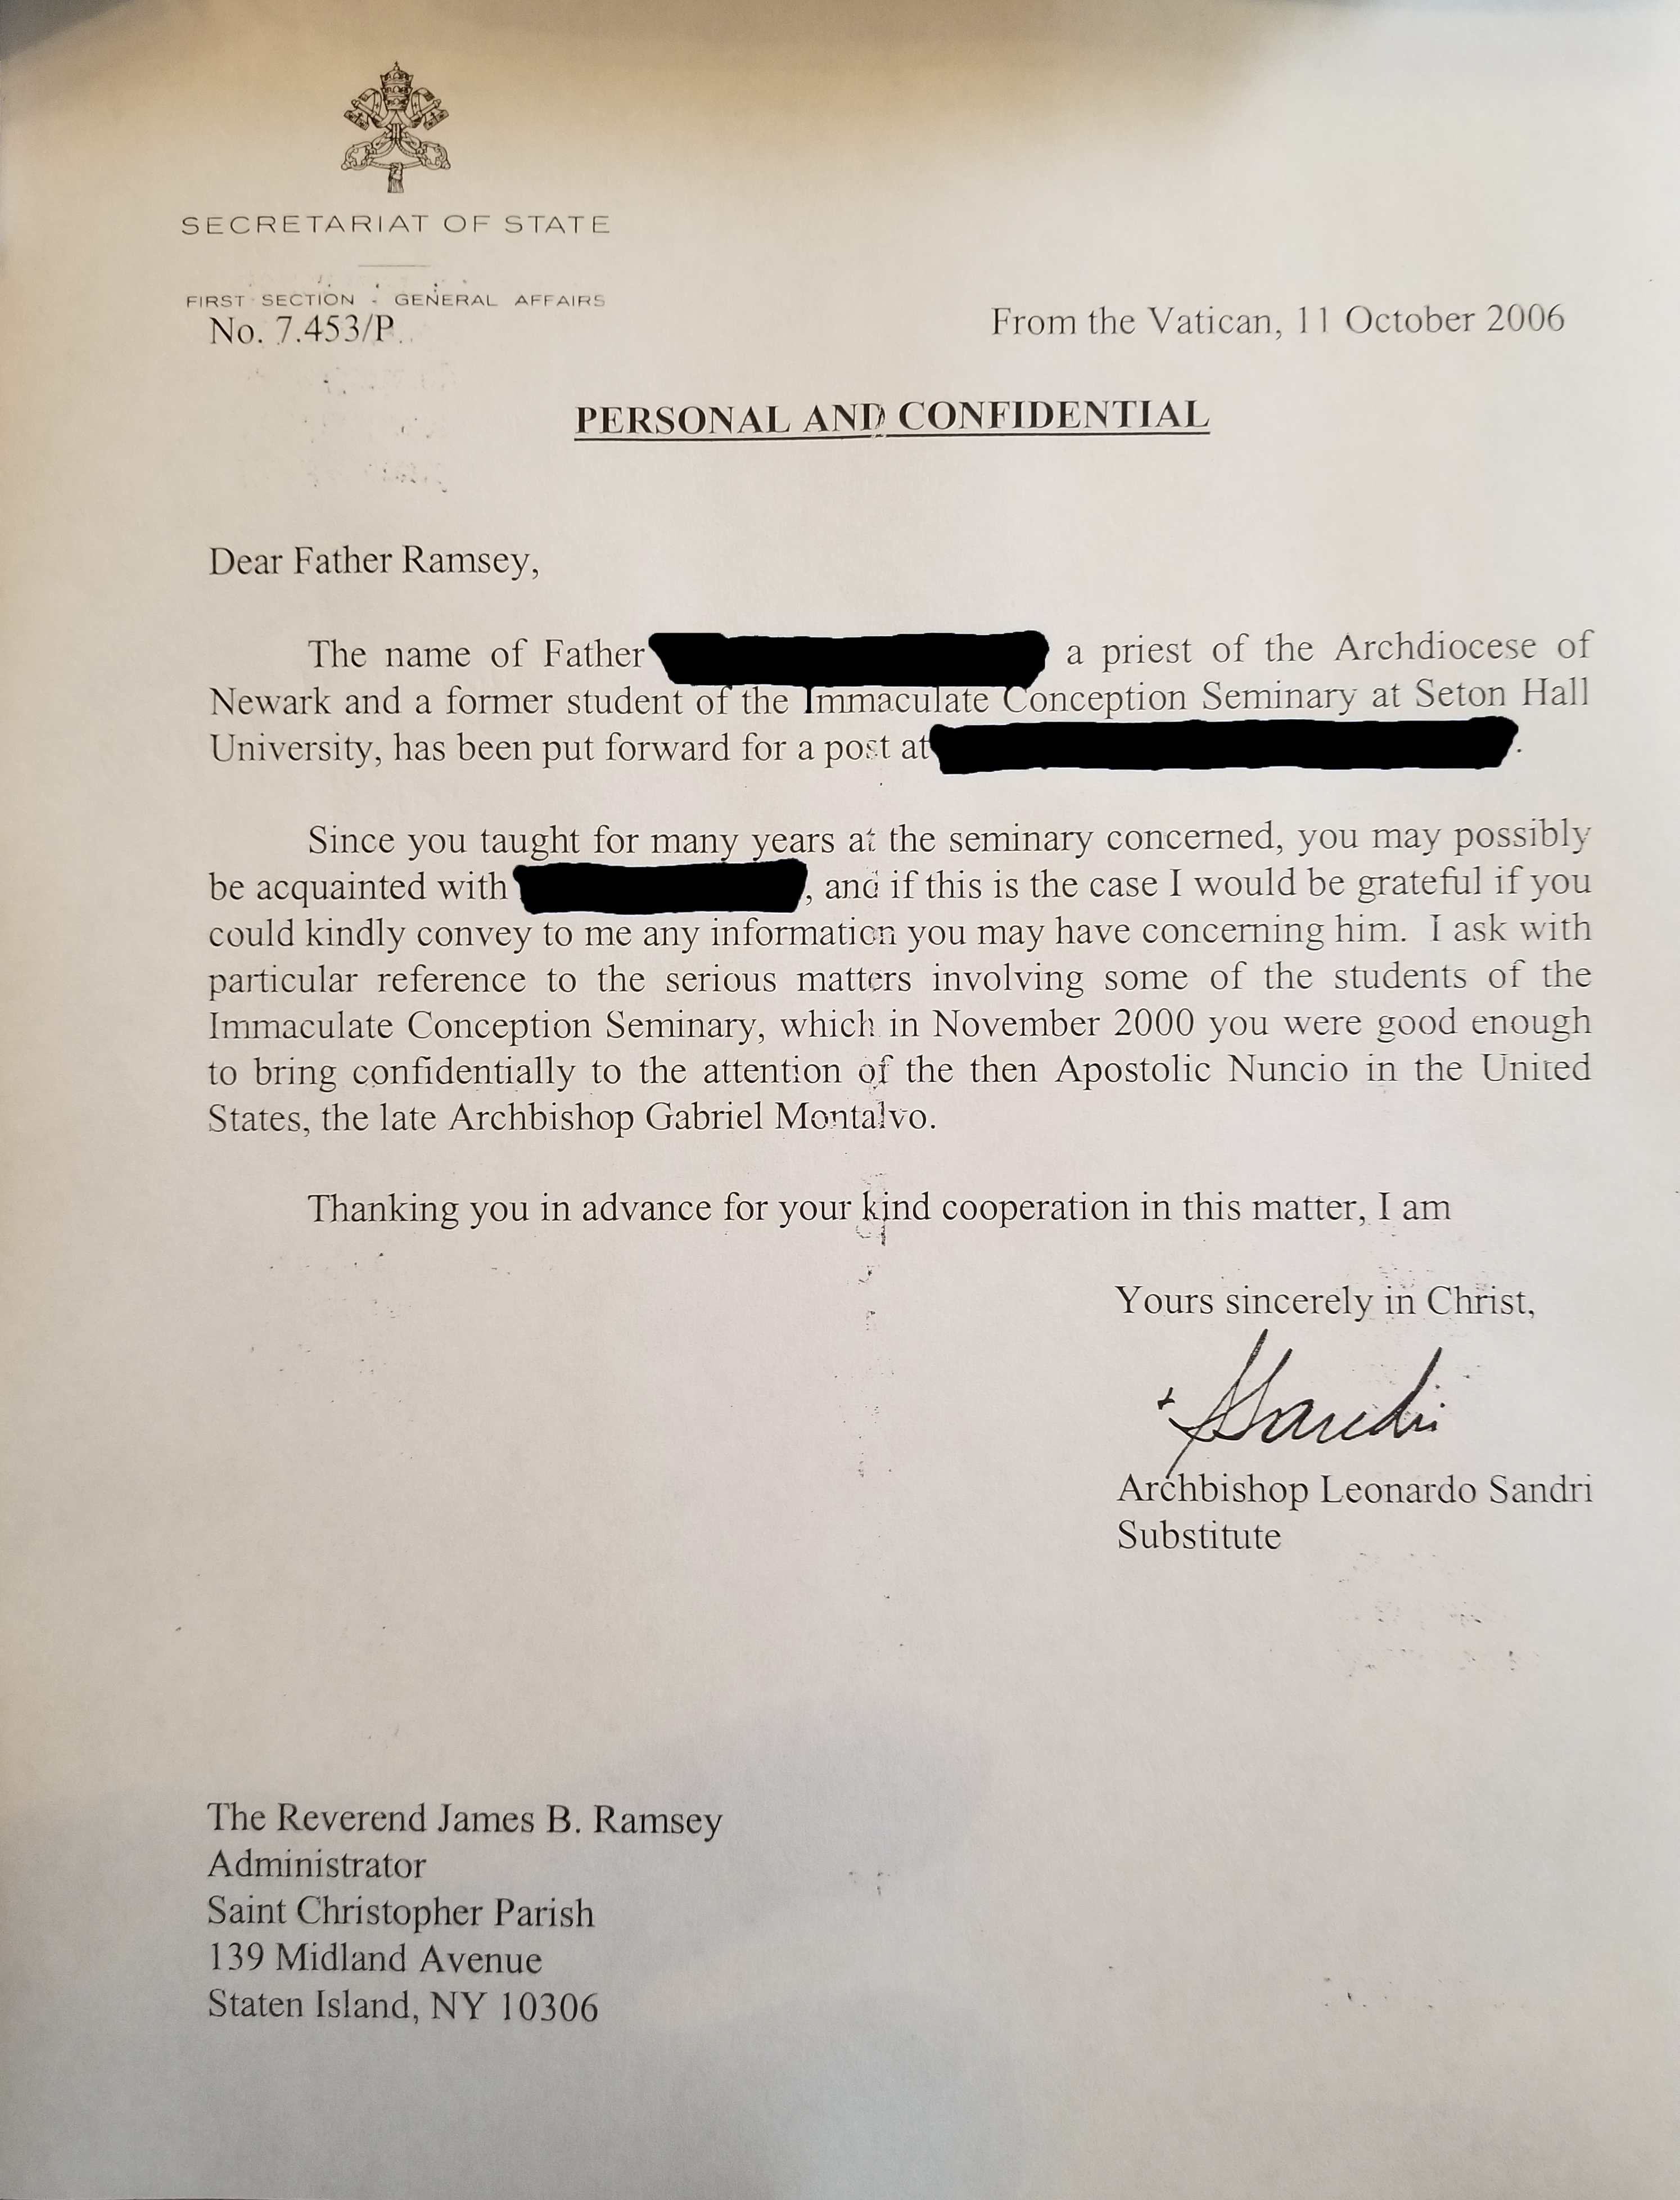 A letter dated Oct. 11, 2006 from Archbishop Leonardo Sandri, then substitute for the Vatican Secretariat of State, to Father Boniface Ramsey references a Nov. 2000 letter Father Ramsey had written to Archbishop Gabriel Montalvo, Vatican nuncio to the United States, warning about sexual abuse committed by Archbishop Theodore E. McCarrick.